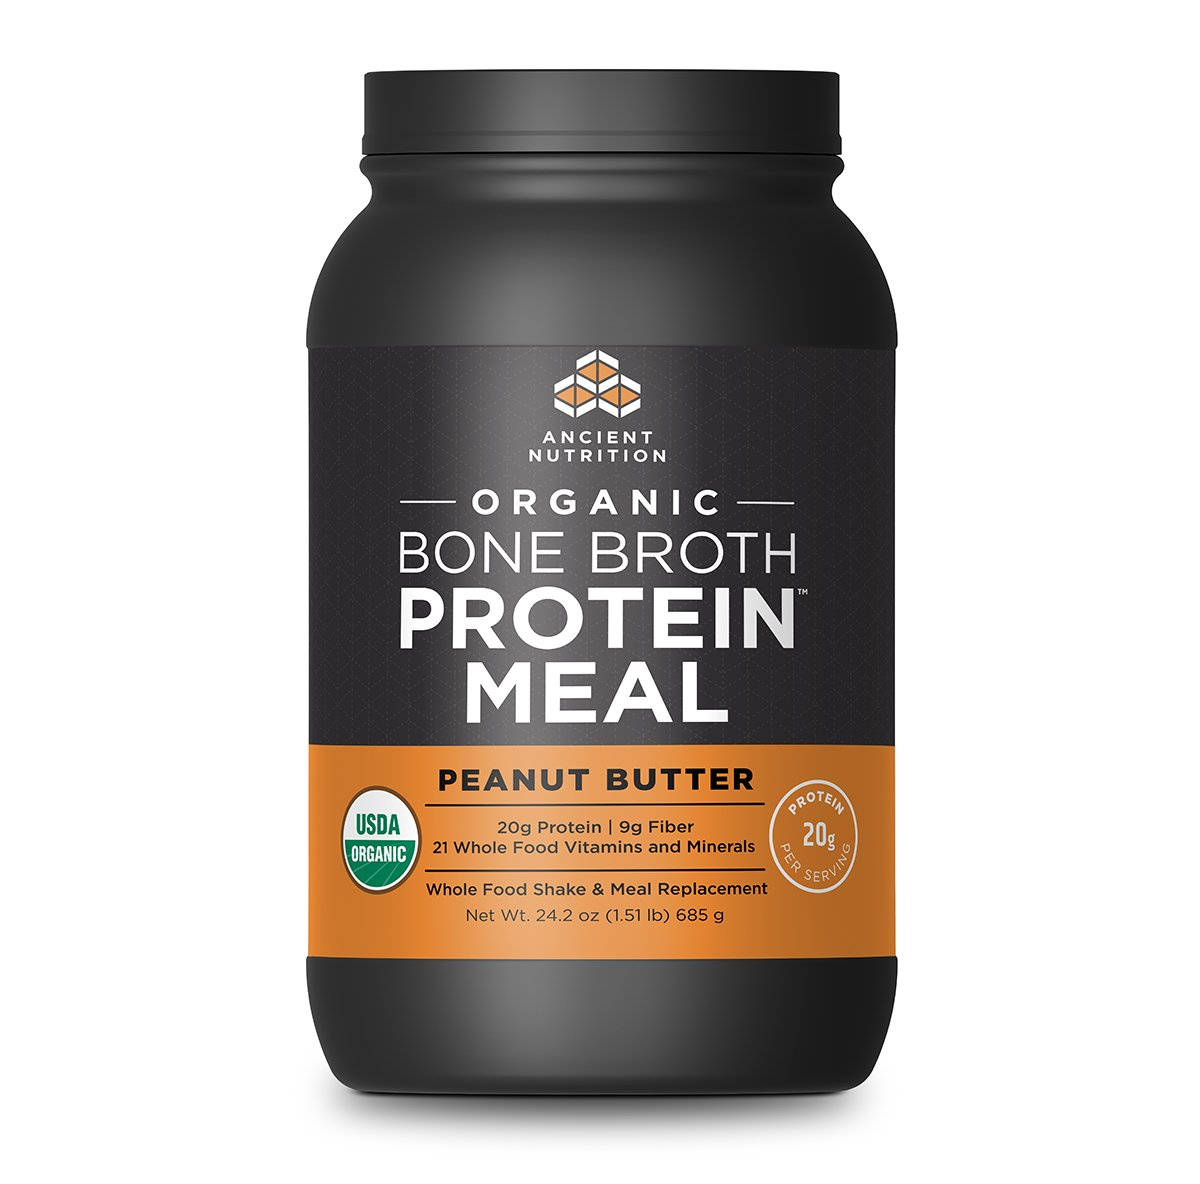 Ancient Nutrition Organic Bone Broth Protein Meal, Peanut Butter Flavor, 15 Serving Size - Organic, Gut-Friendly, Paleo-Friendly, Protein Meal Replacement by Ancient Nutrition